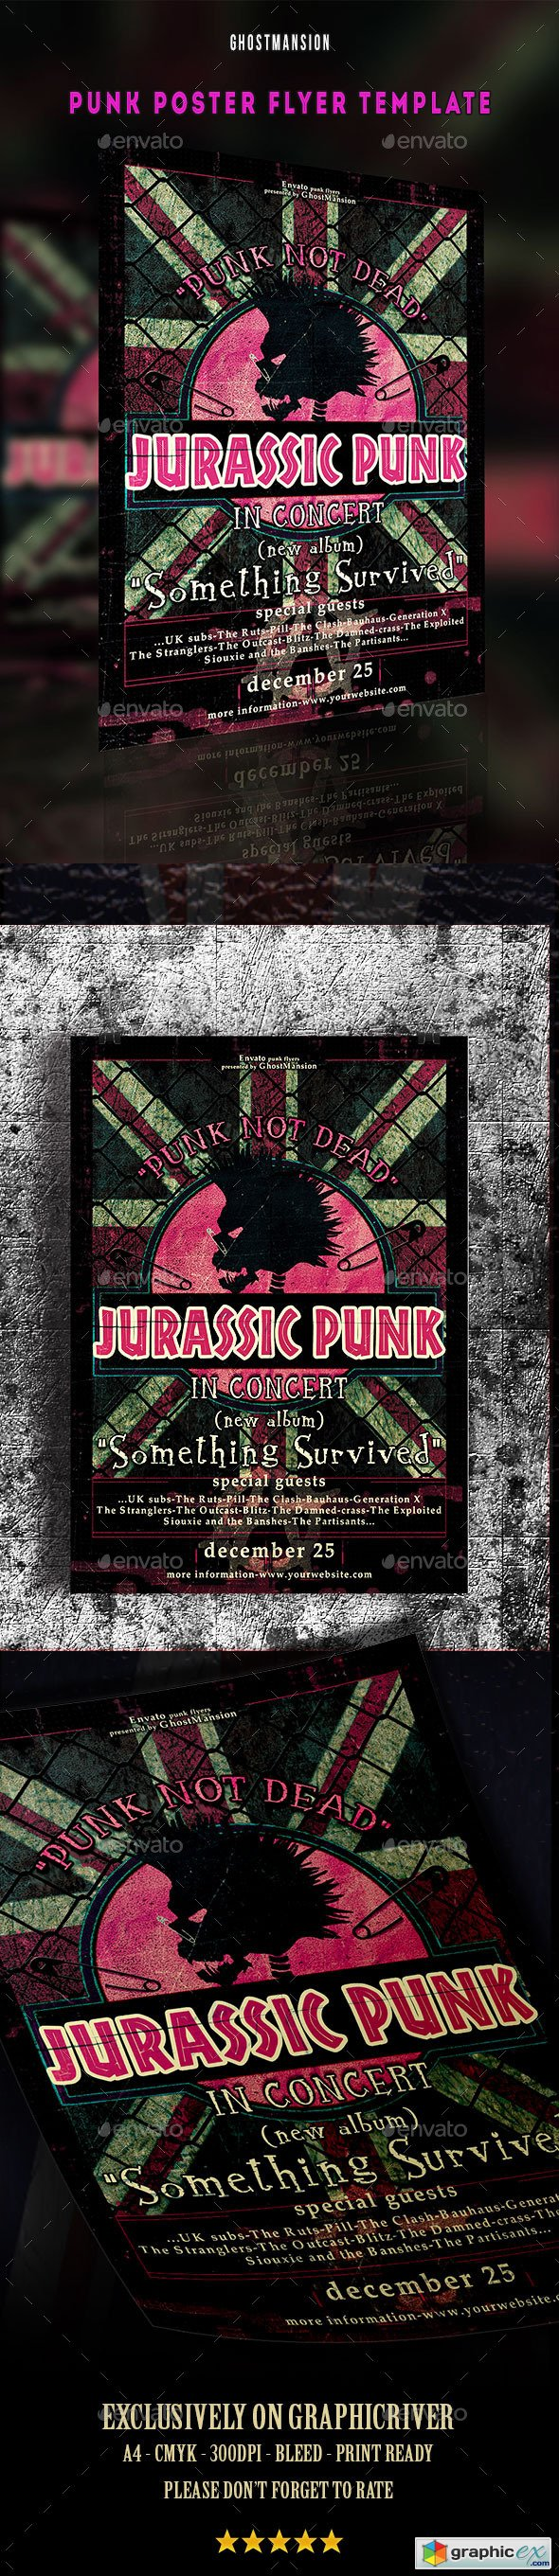 Music Punk Poster Flyer Template